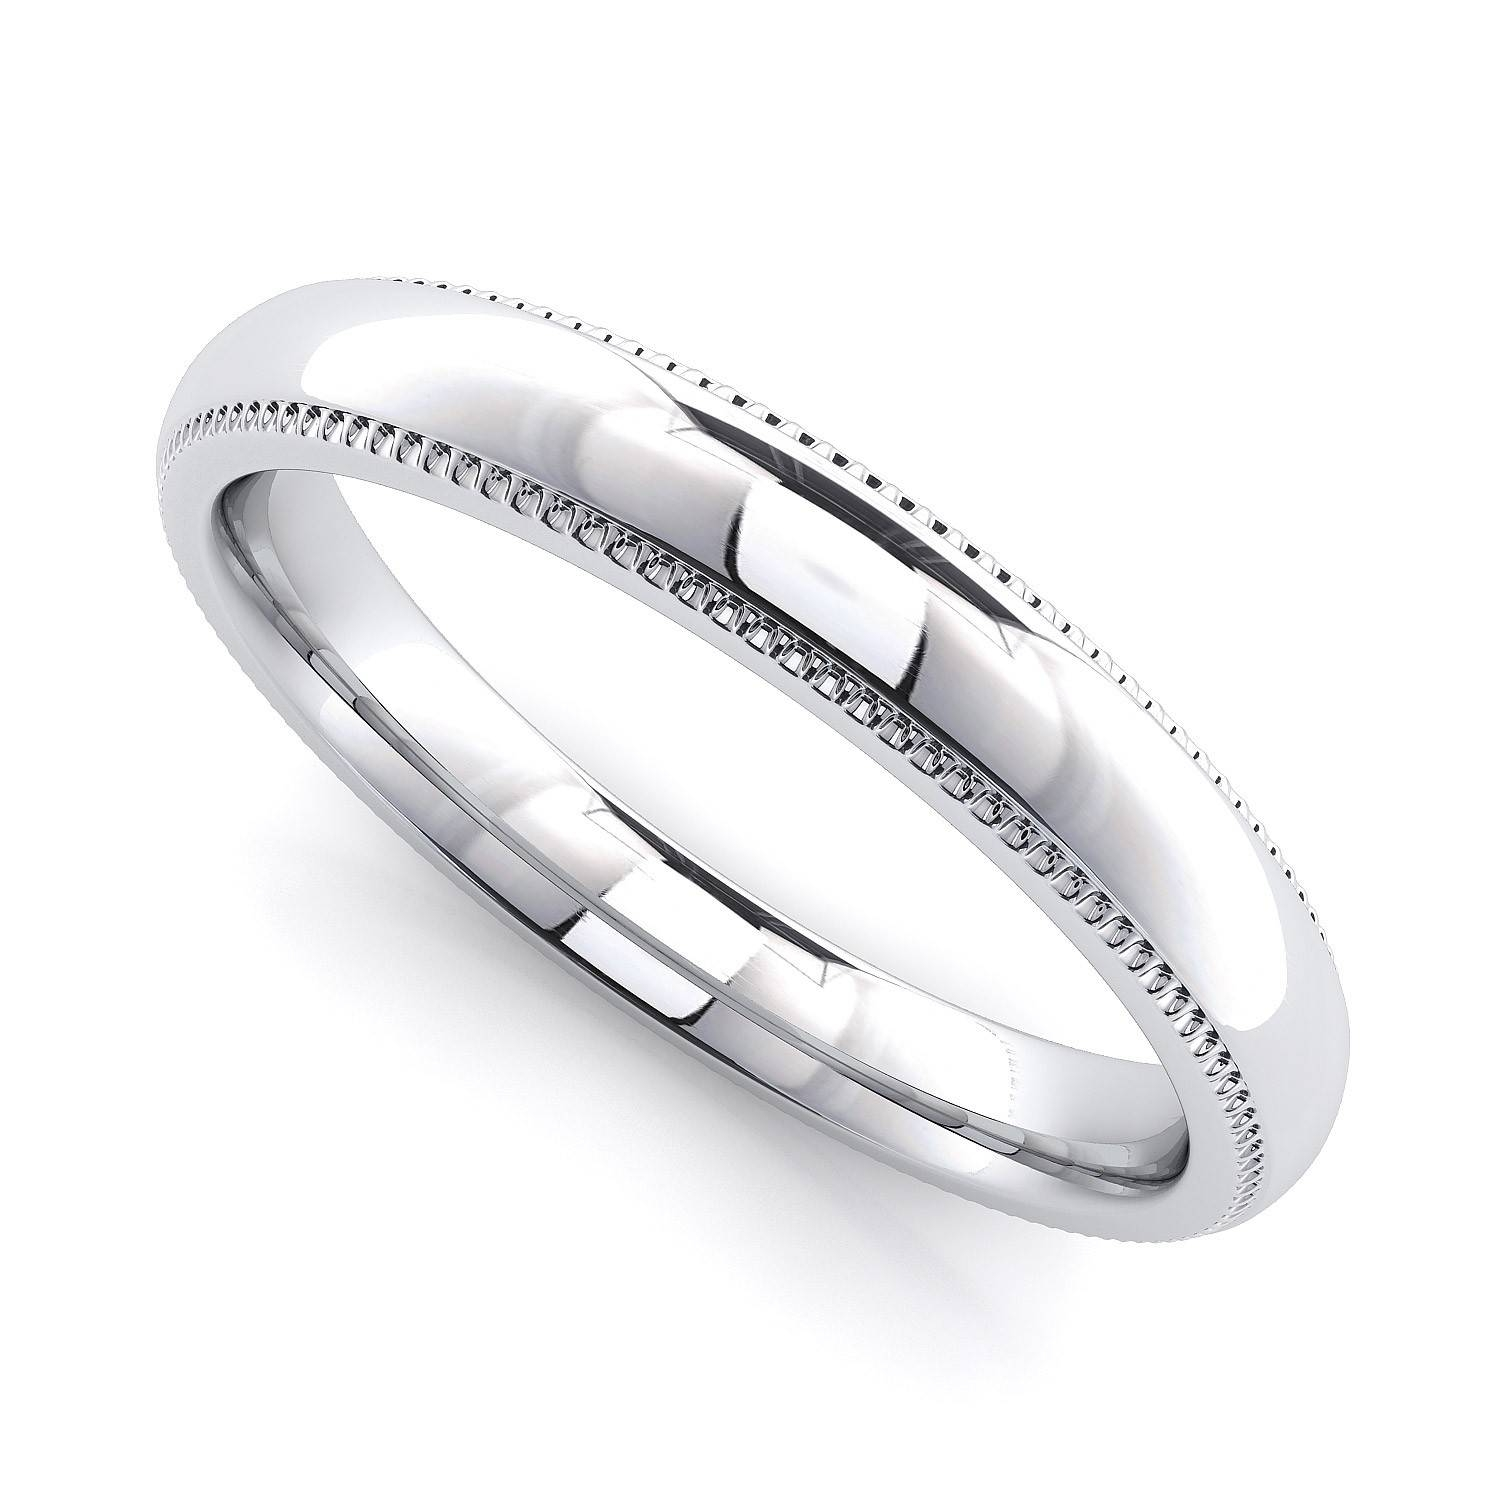 new is item men one tungsten engraving fit carbide price from hot in engagement jewelry bands all for ring comfort wedding can